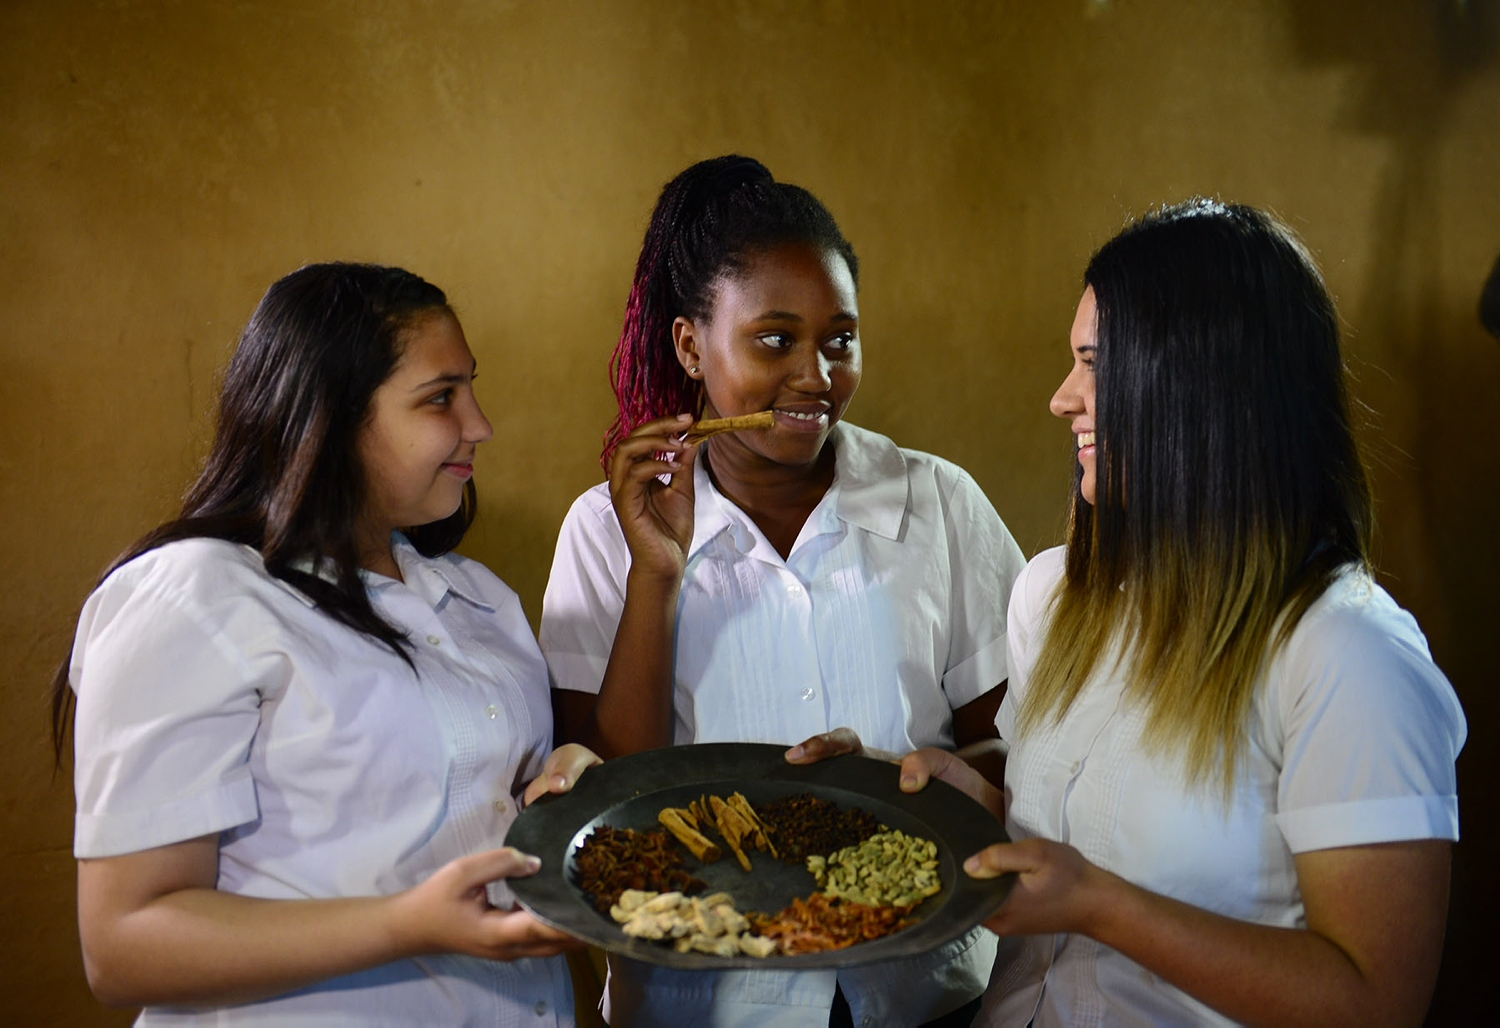 Three girls in white school shirts holding plate of various ingredients.